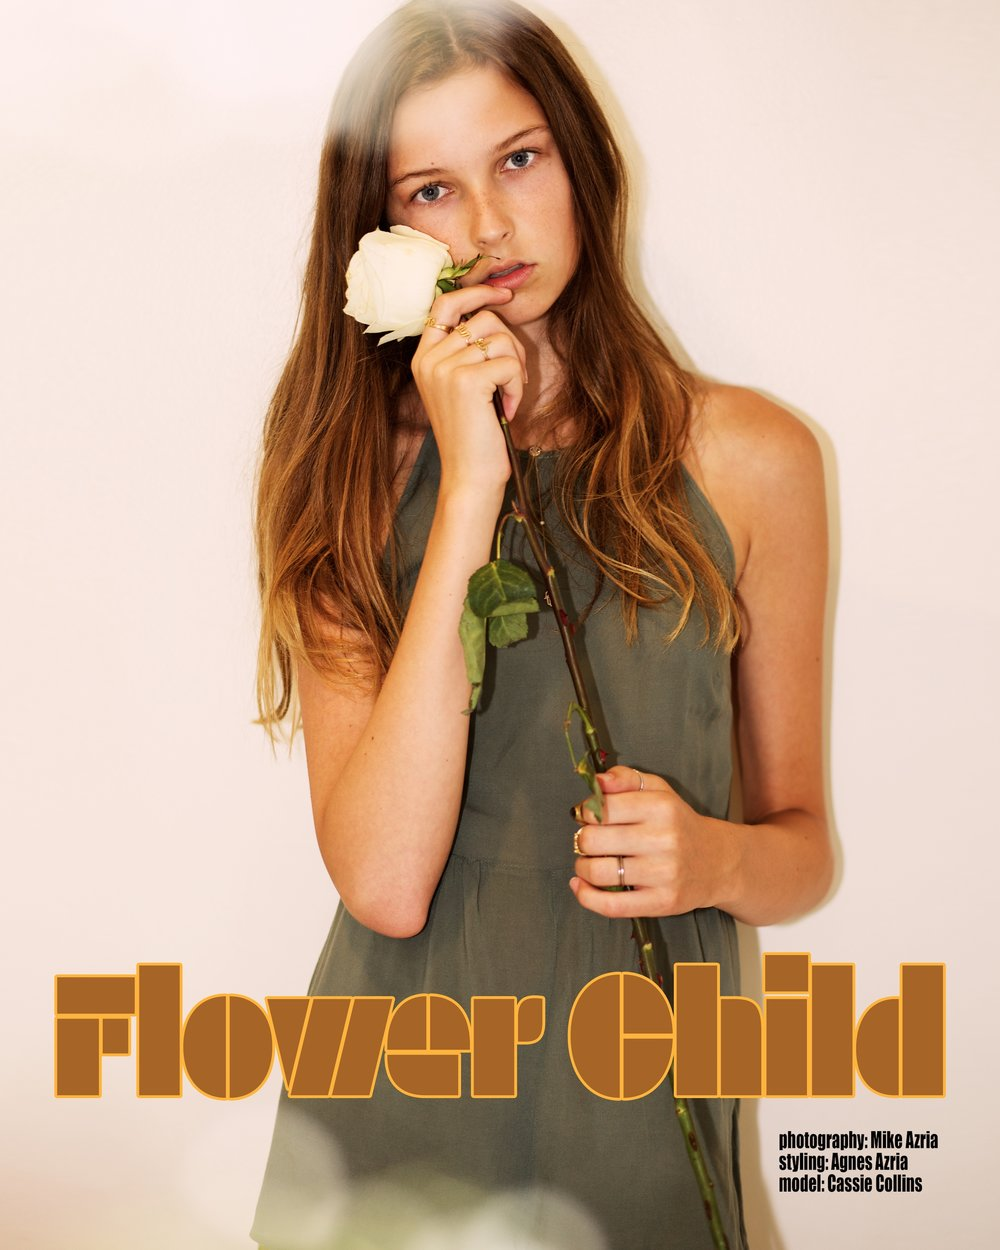 Flower Child copy.jpg